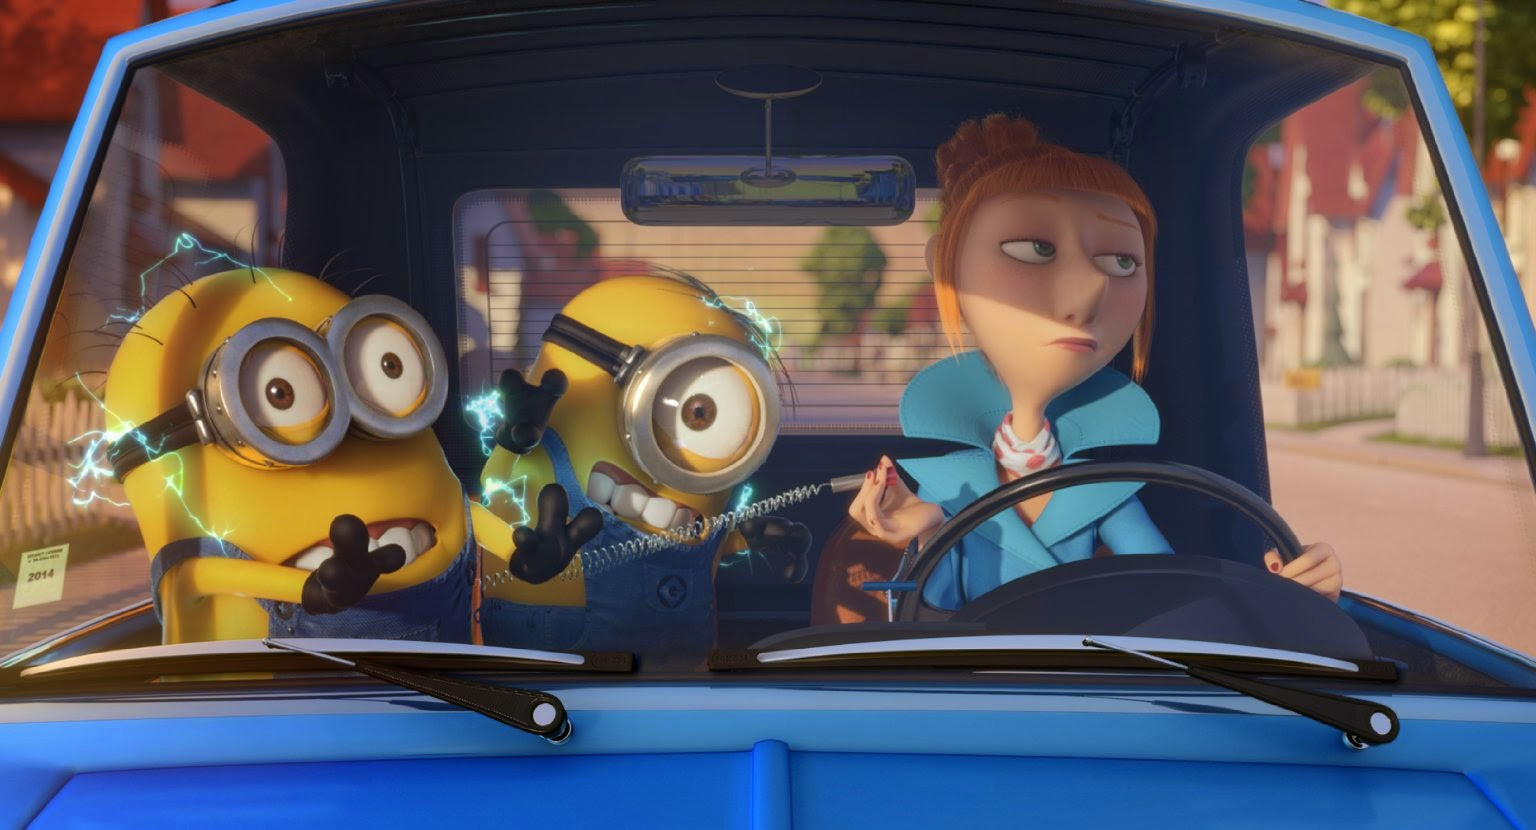 Despicable me 2 online dating scene in dallas